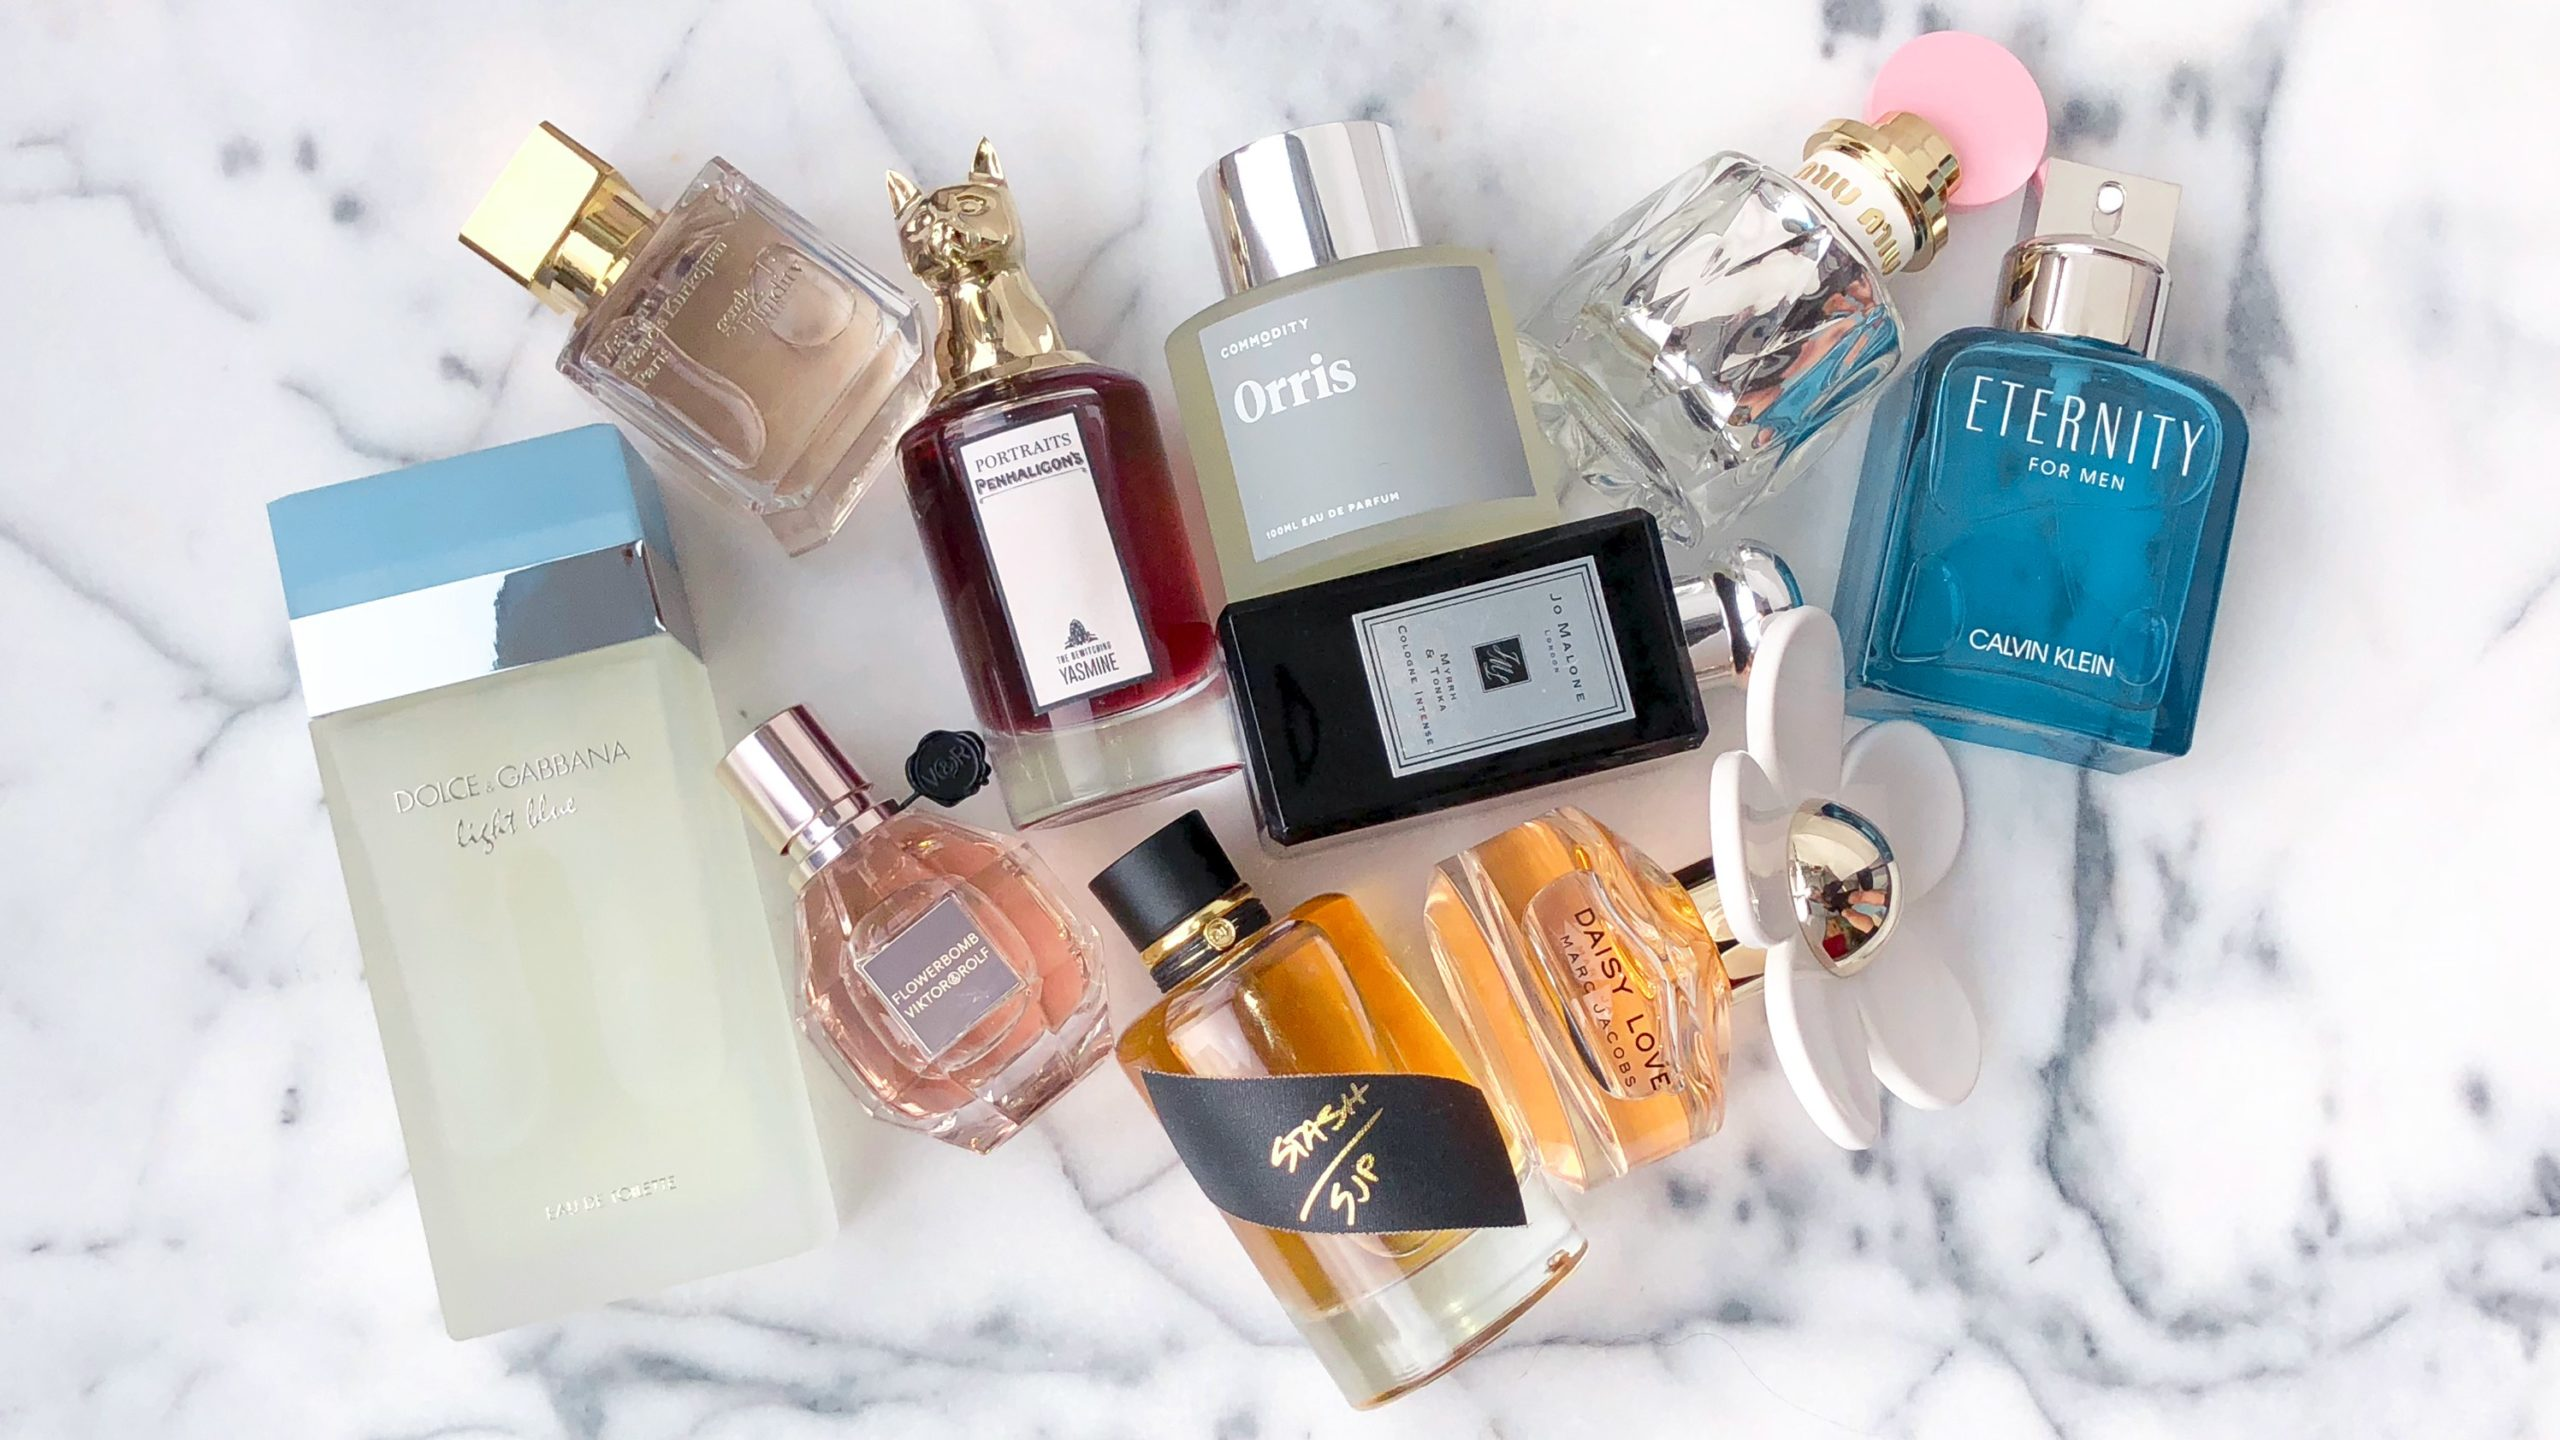 12 Best Long-lasting Perfumes For Women 2020 4